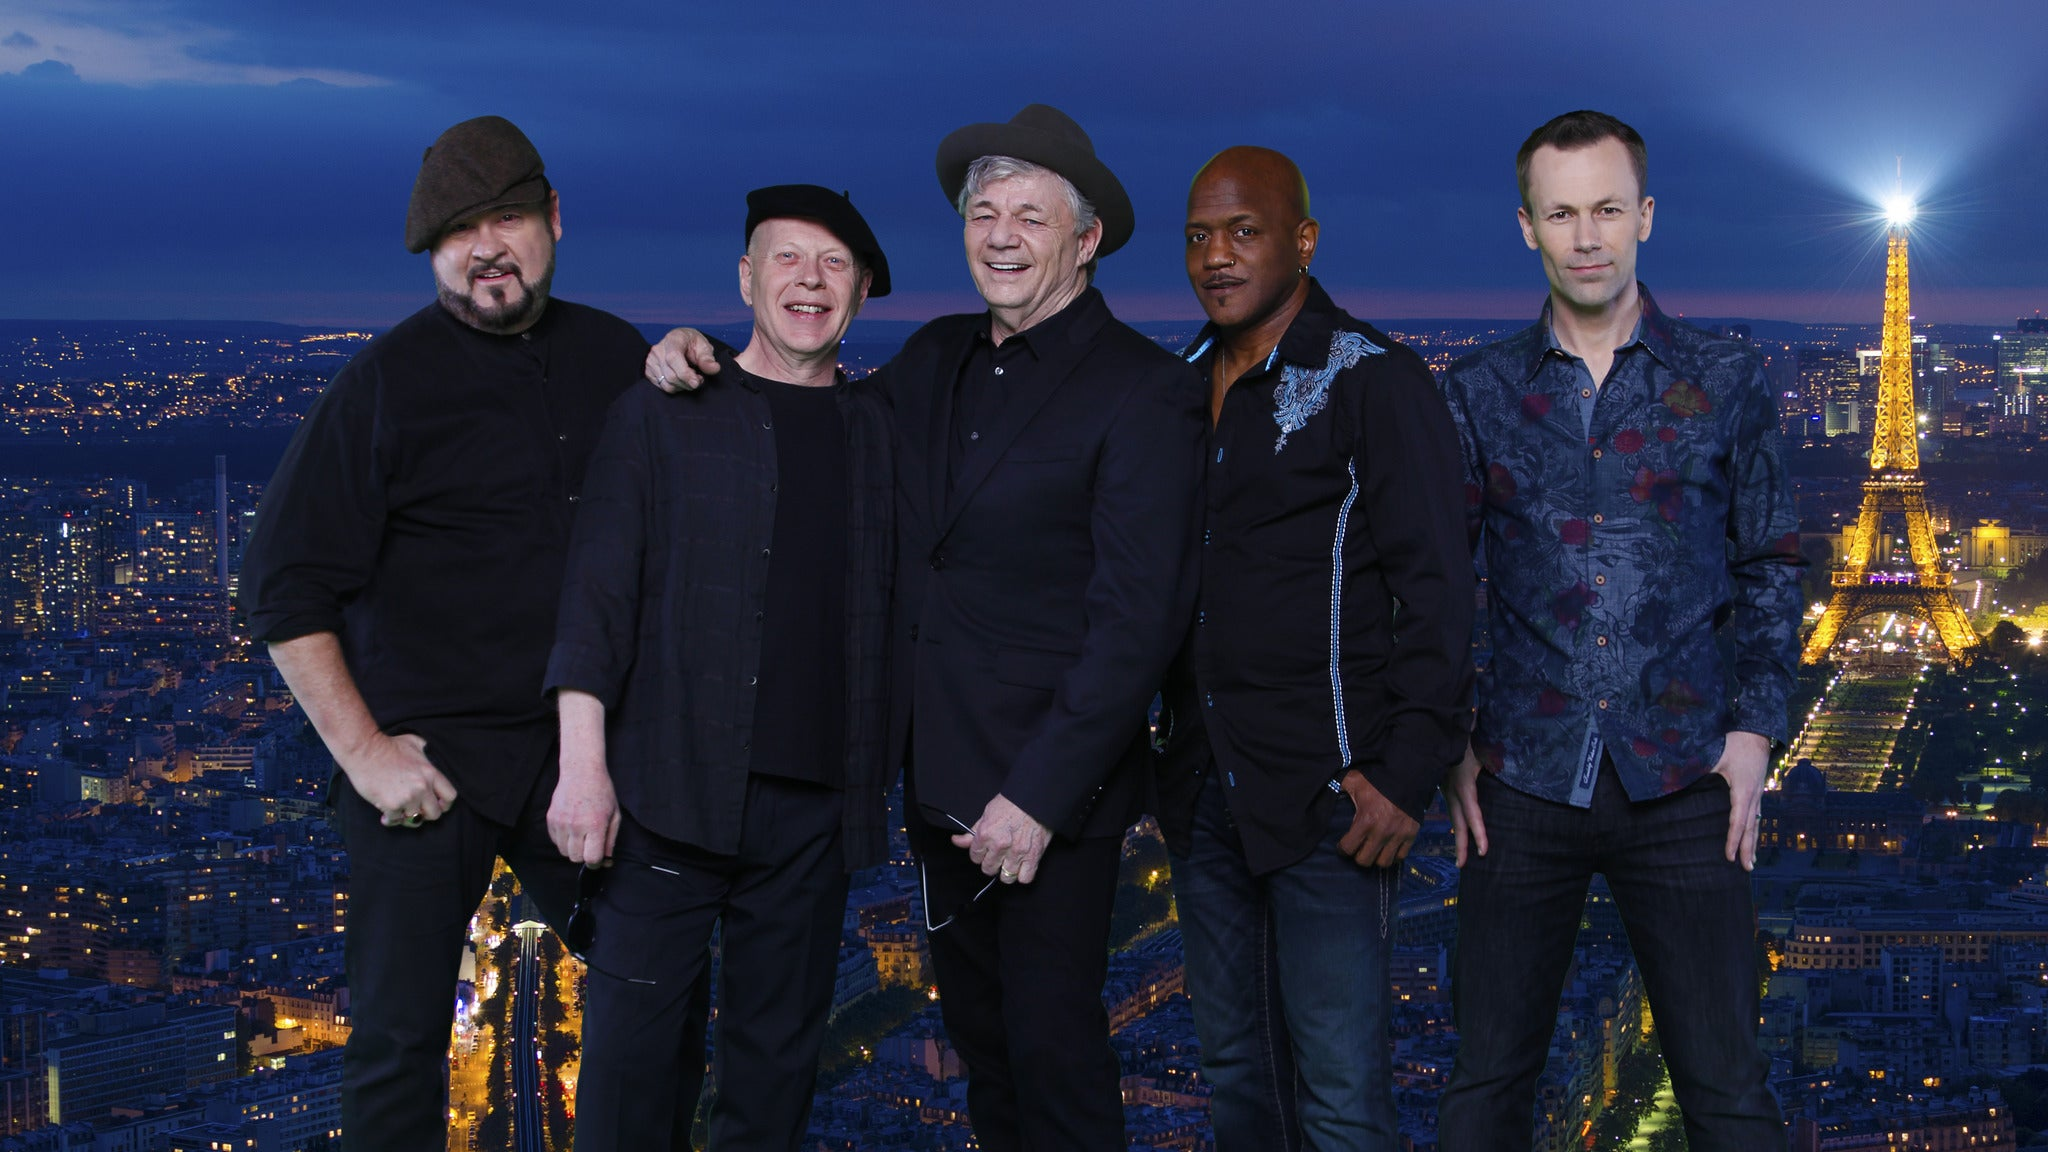 Steve Miller Band with Peter Frampton at Germain Arena